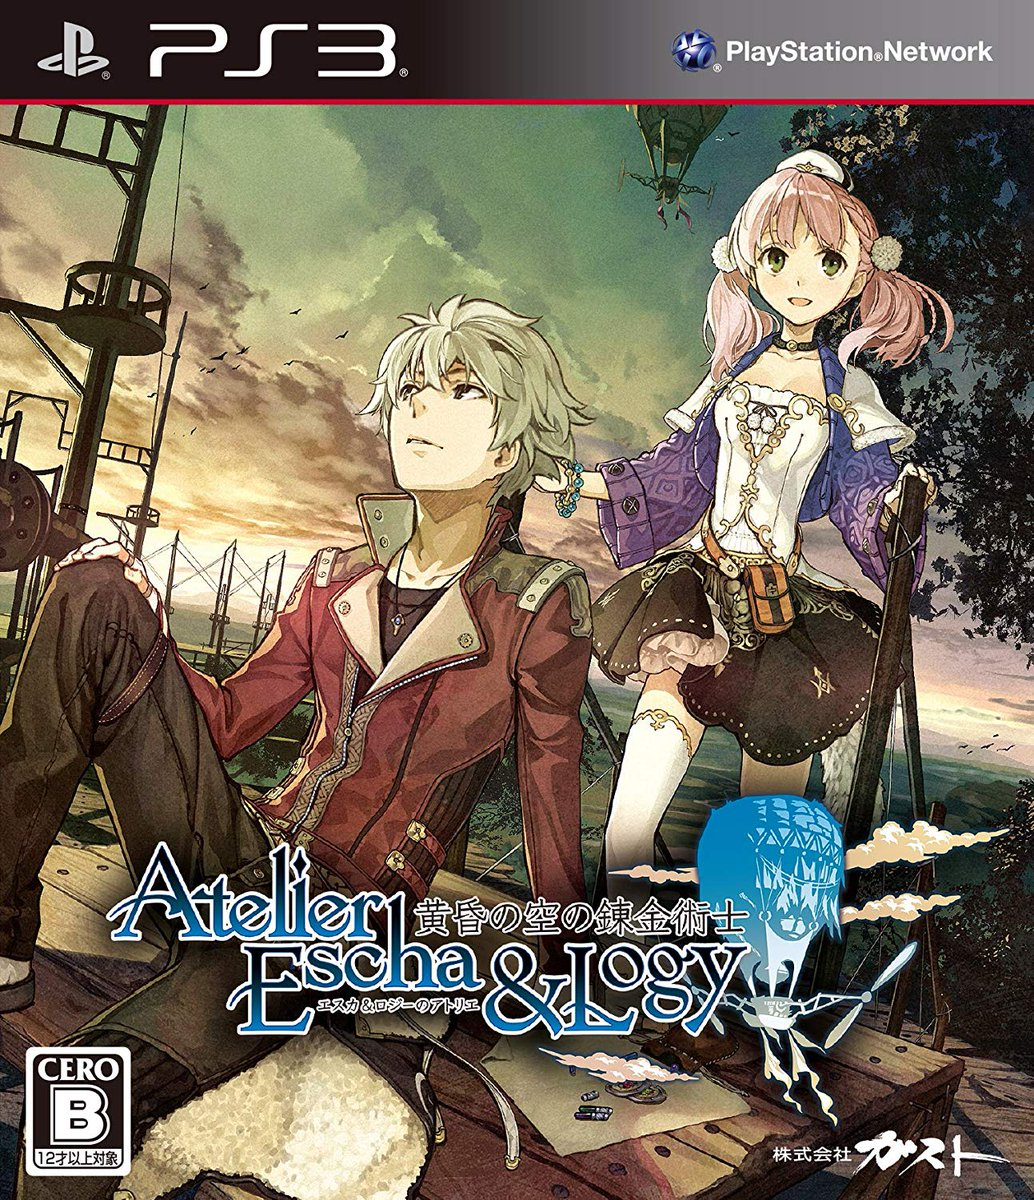 【Atelier Escha & Logy】Alchemists of the Dusk Skyさて、悩みに悩ん